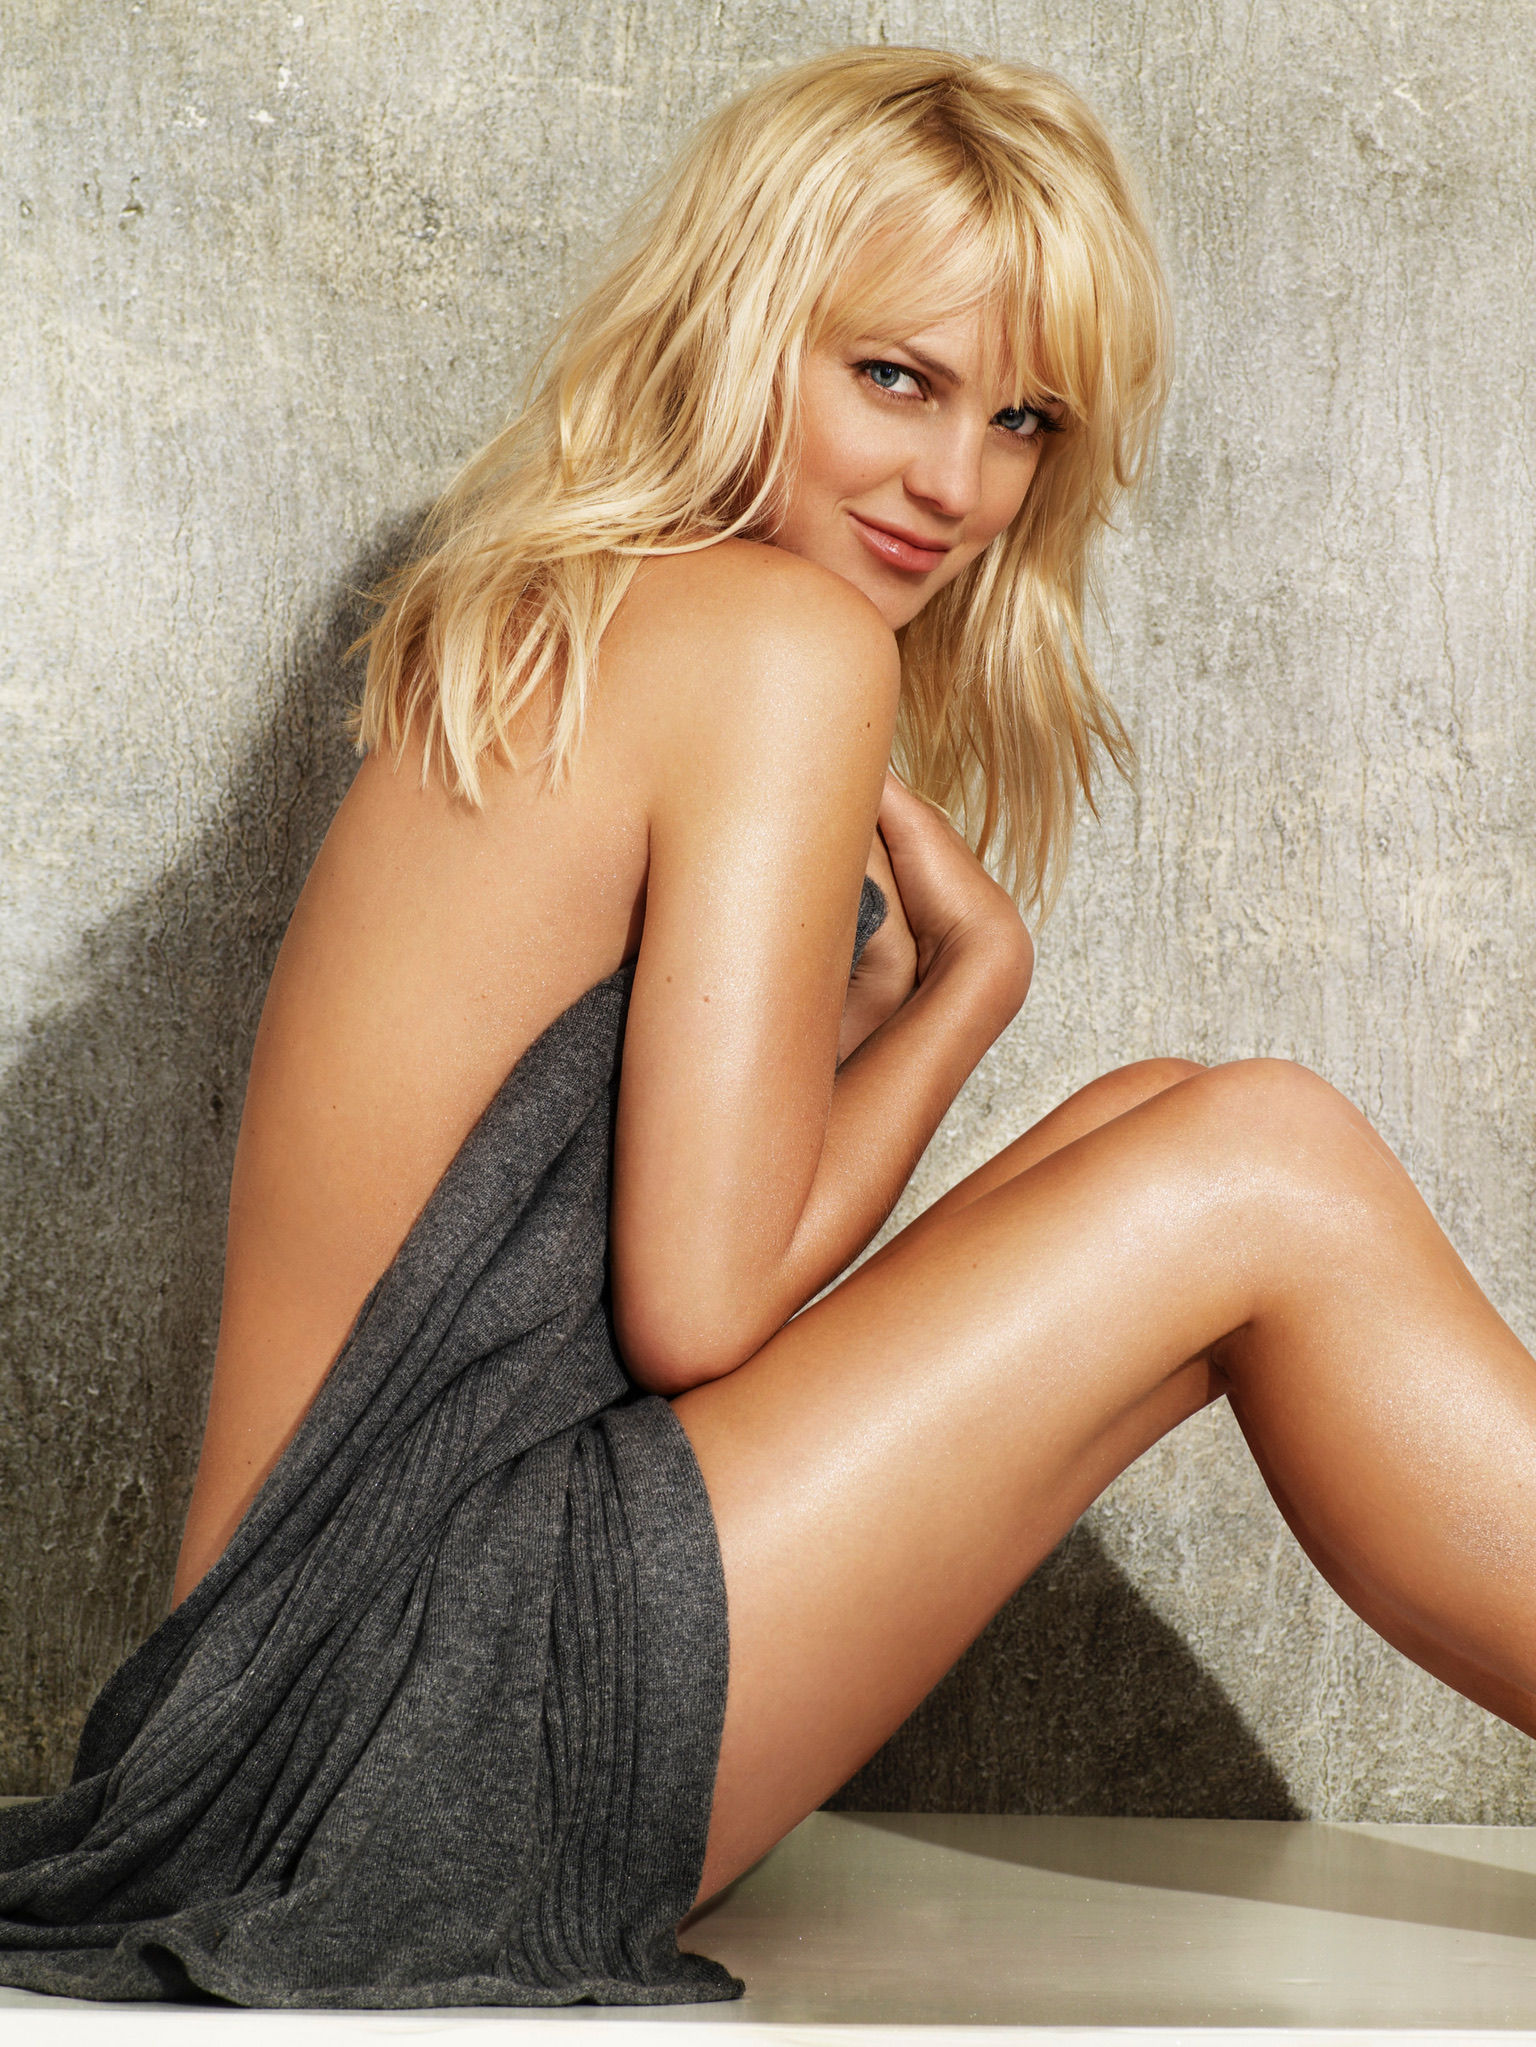 Anna faris sexy photos